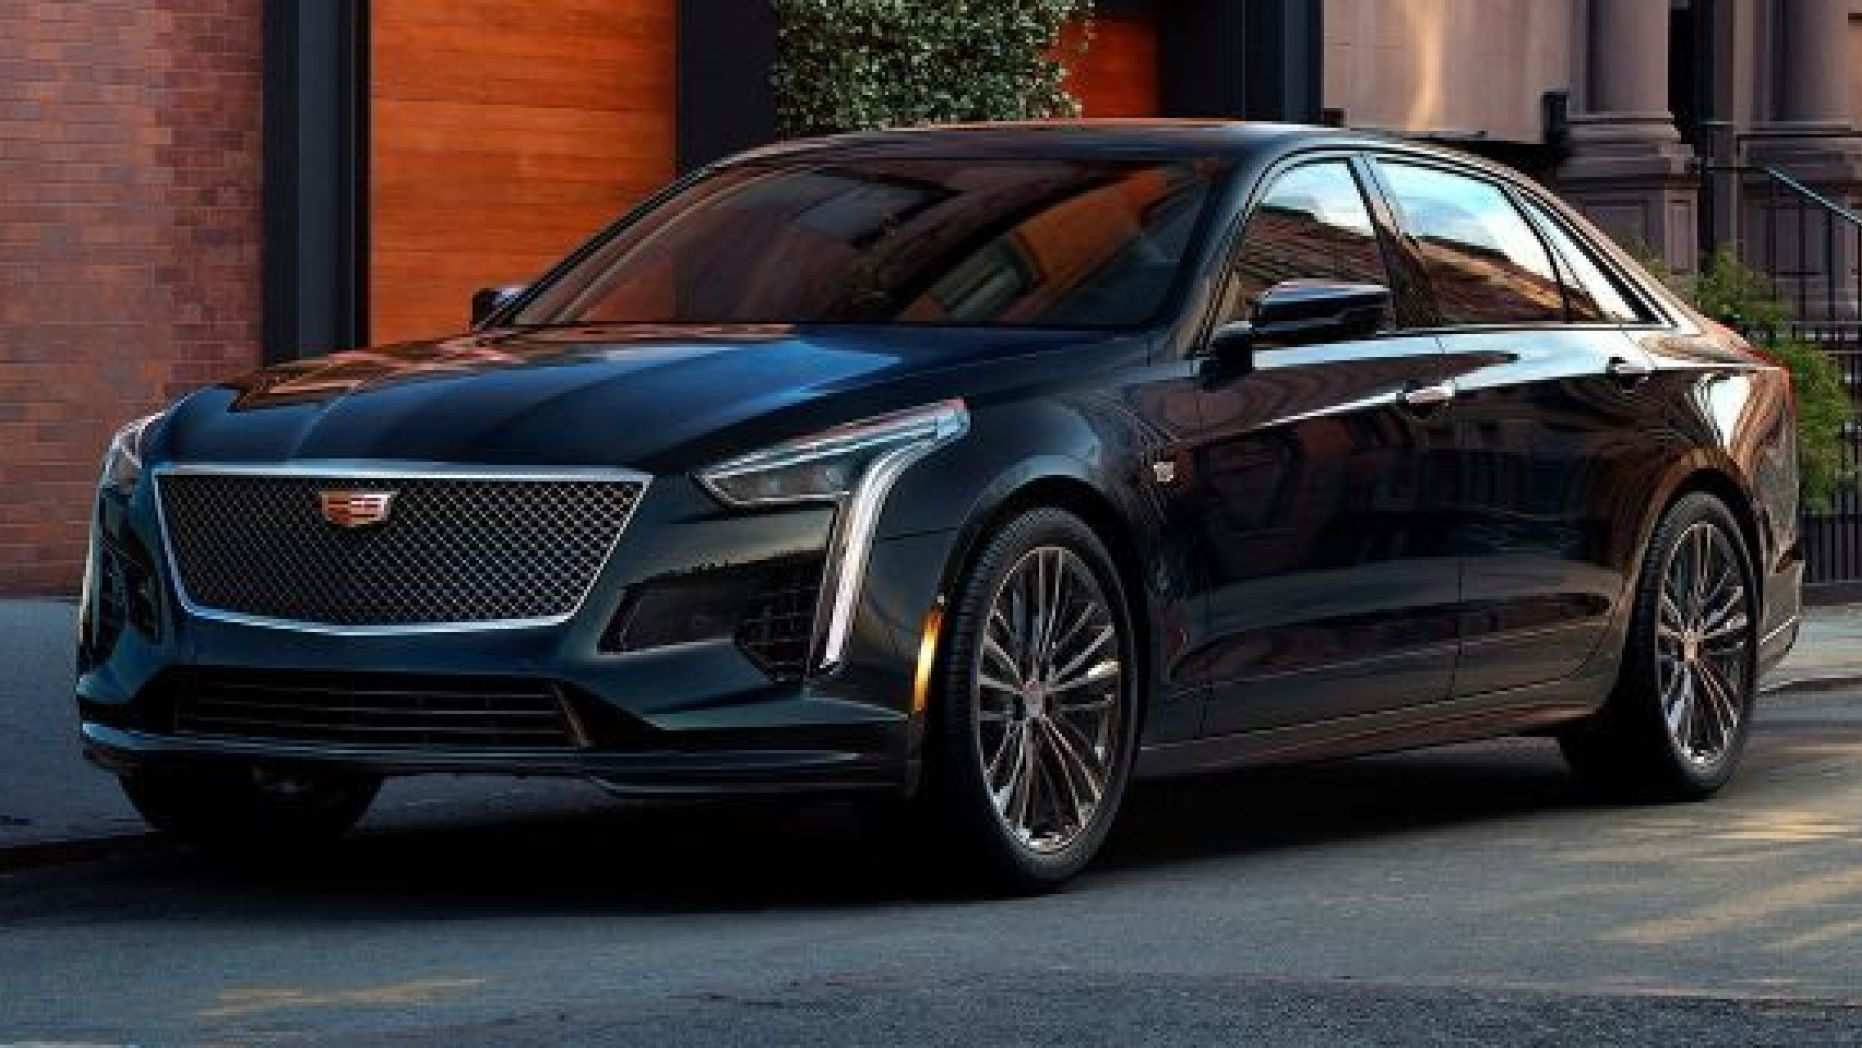 52 Best Review 2019 Cadillac Twin Turbo V8 Redesign with 2019 Cadillac Twin Turbo V8